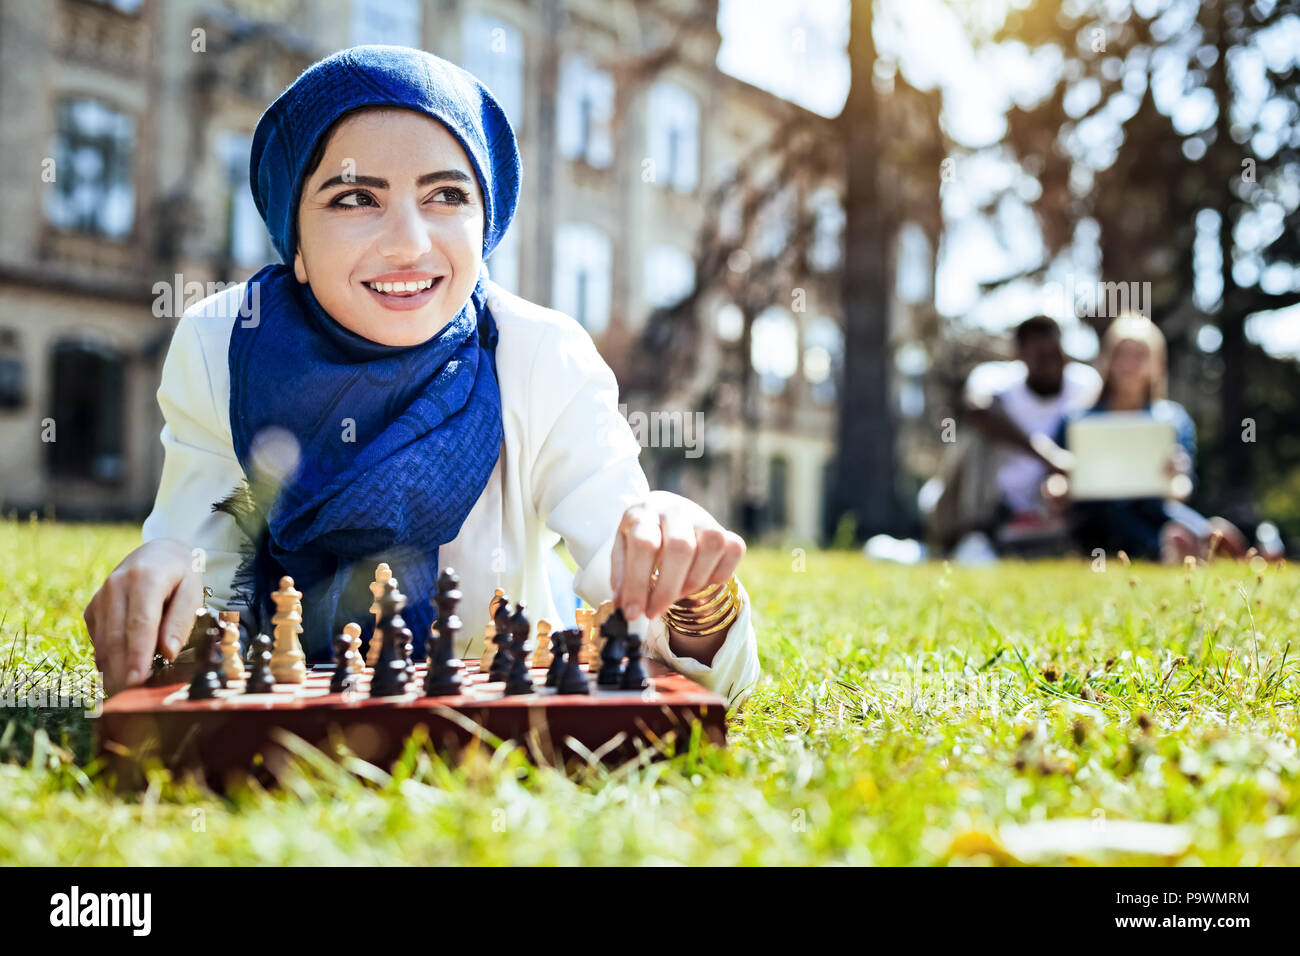 Beautiful girl dreaming while playing chess - Stock Image